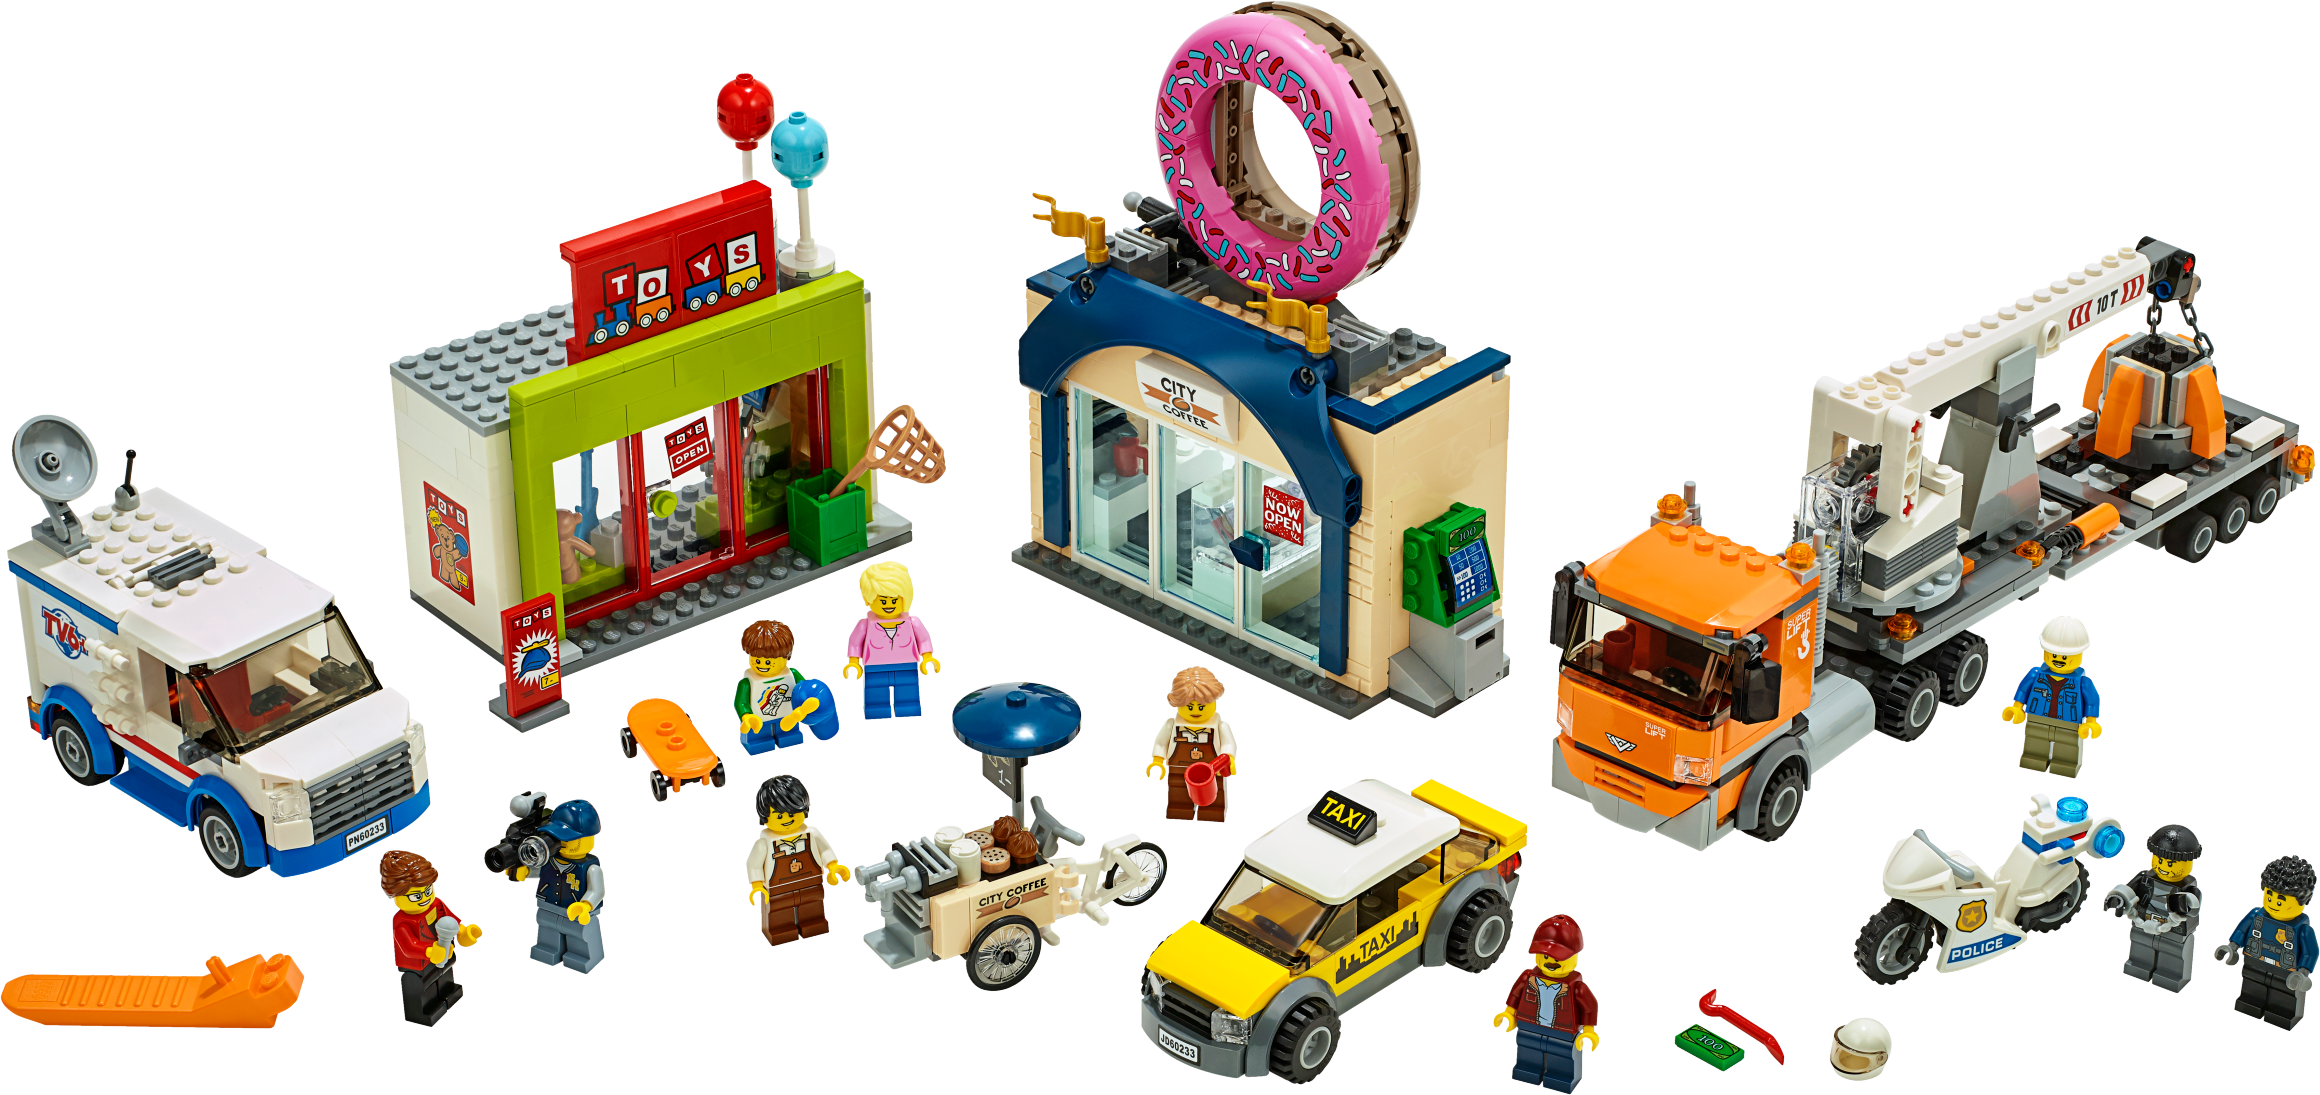 Donut Shop Opening